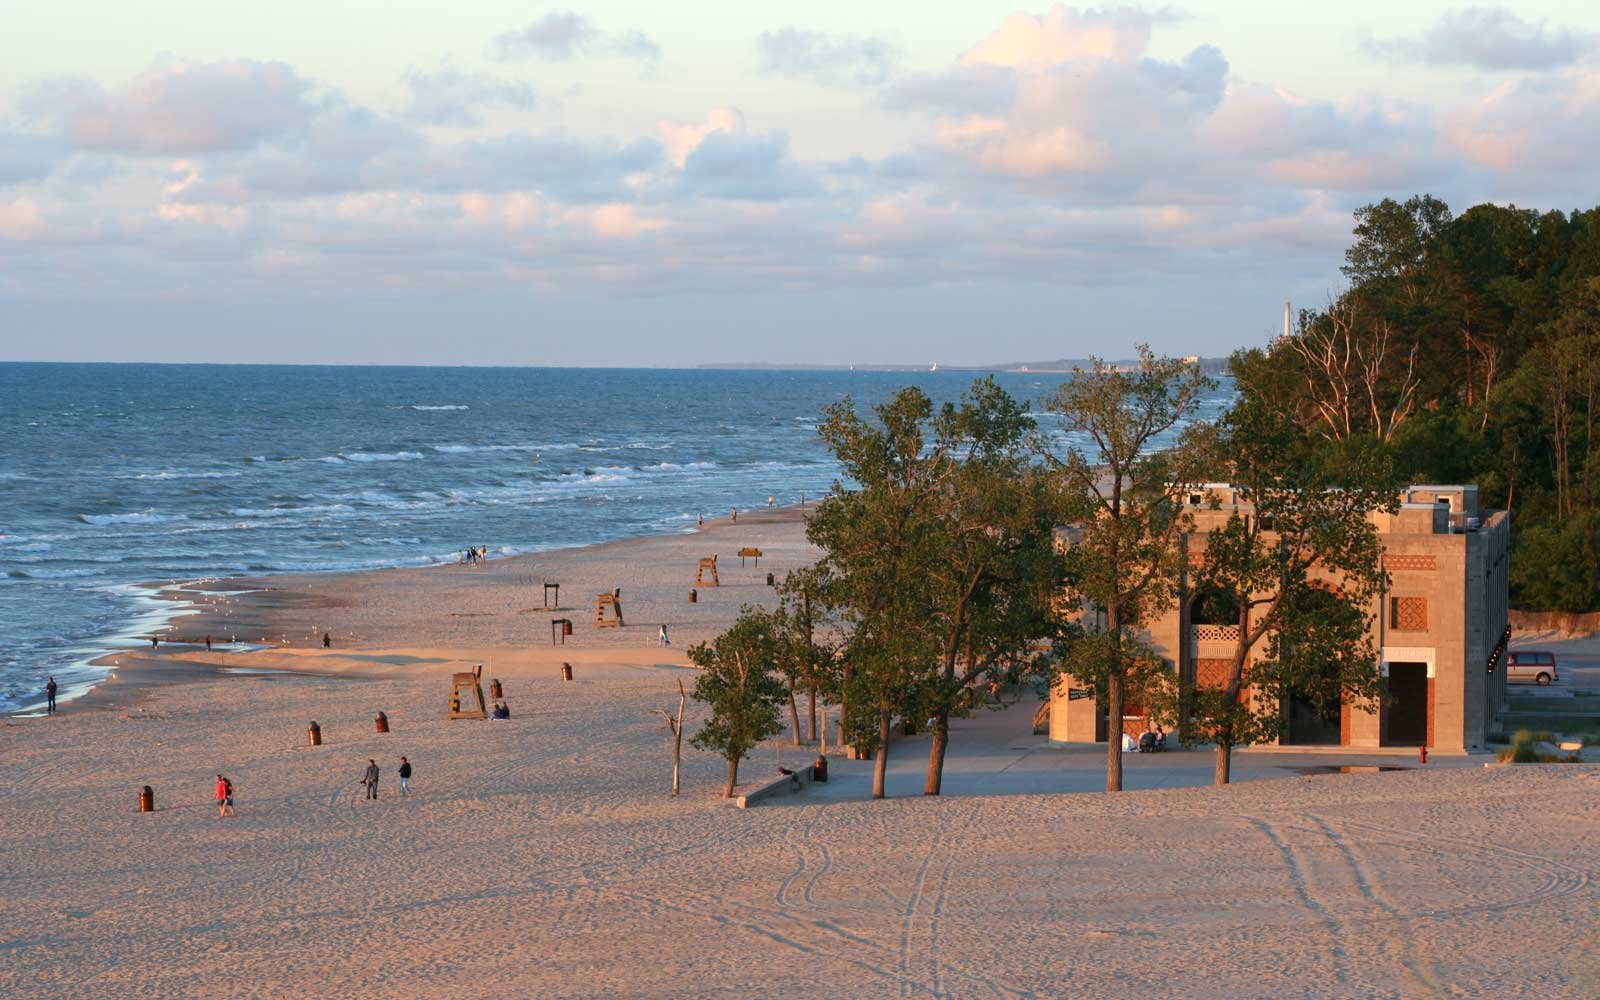 Things to do at Indiana Dunes National Park